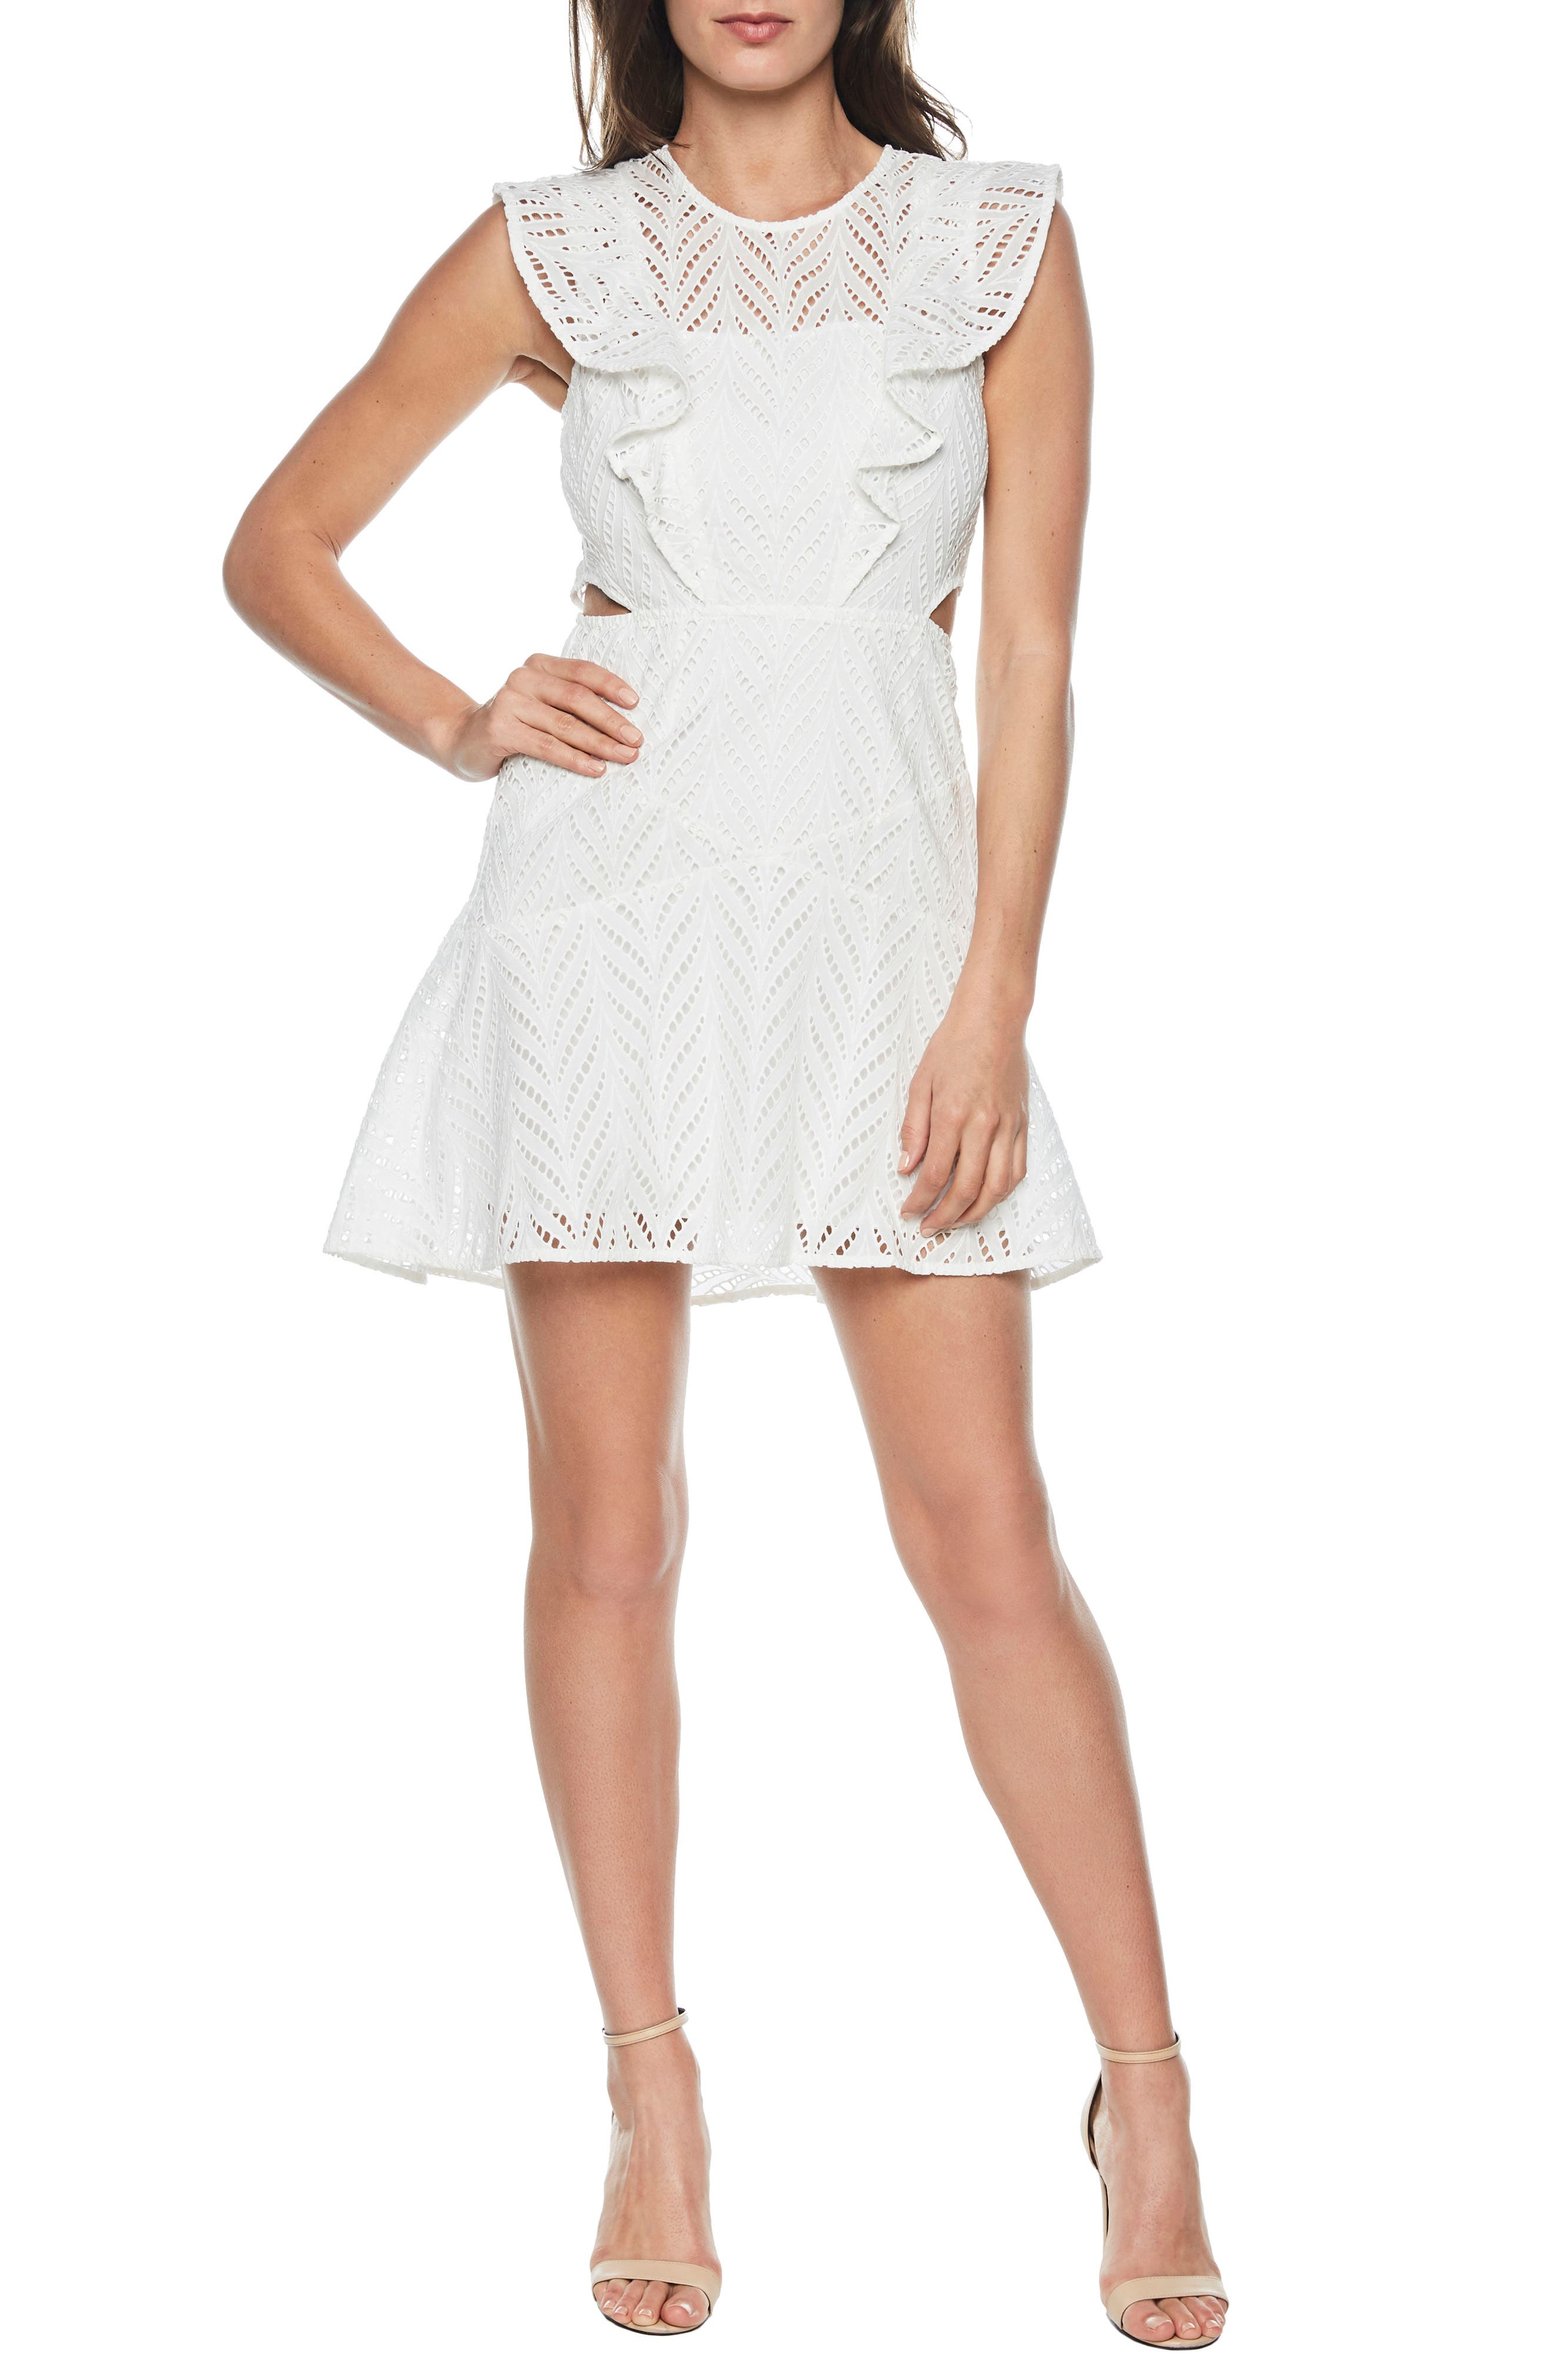 Kira Crochet Ruffle Dress,                             Main thumbnail 1, color,                             Ivory